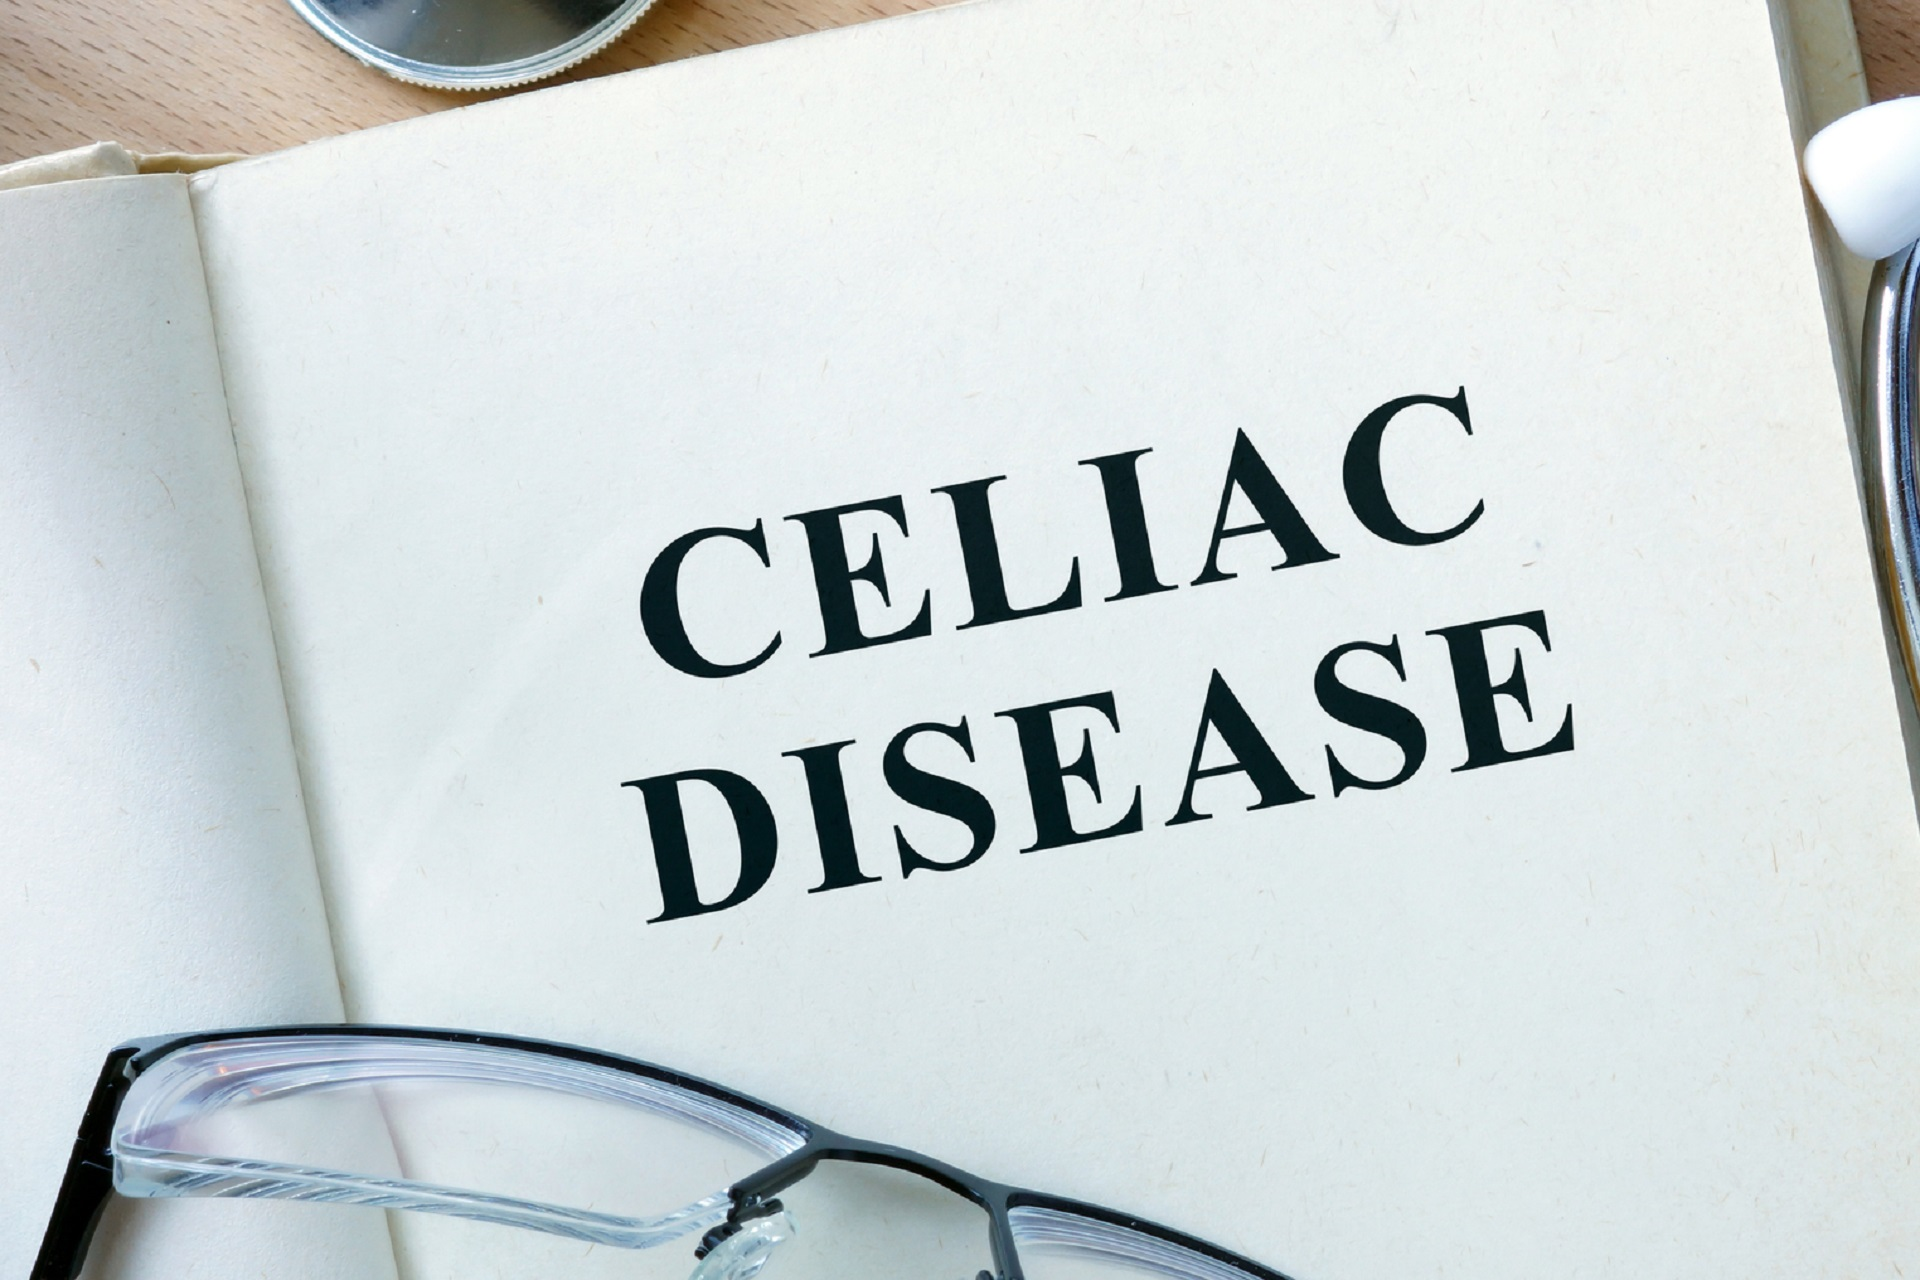 celiac disease research paper Essays - largest database of quality sample essays and research papers on celiac disease.